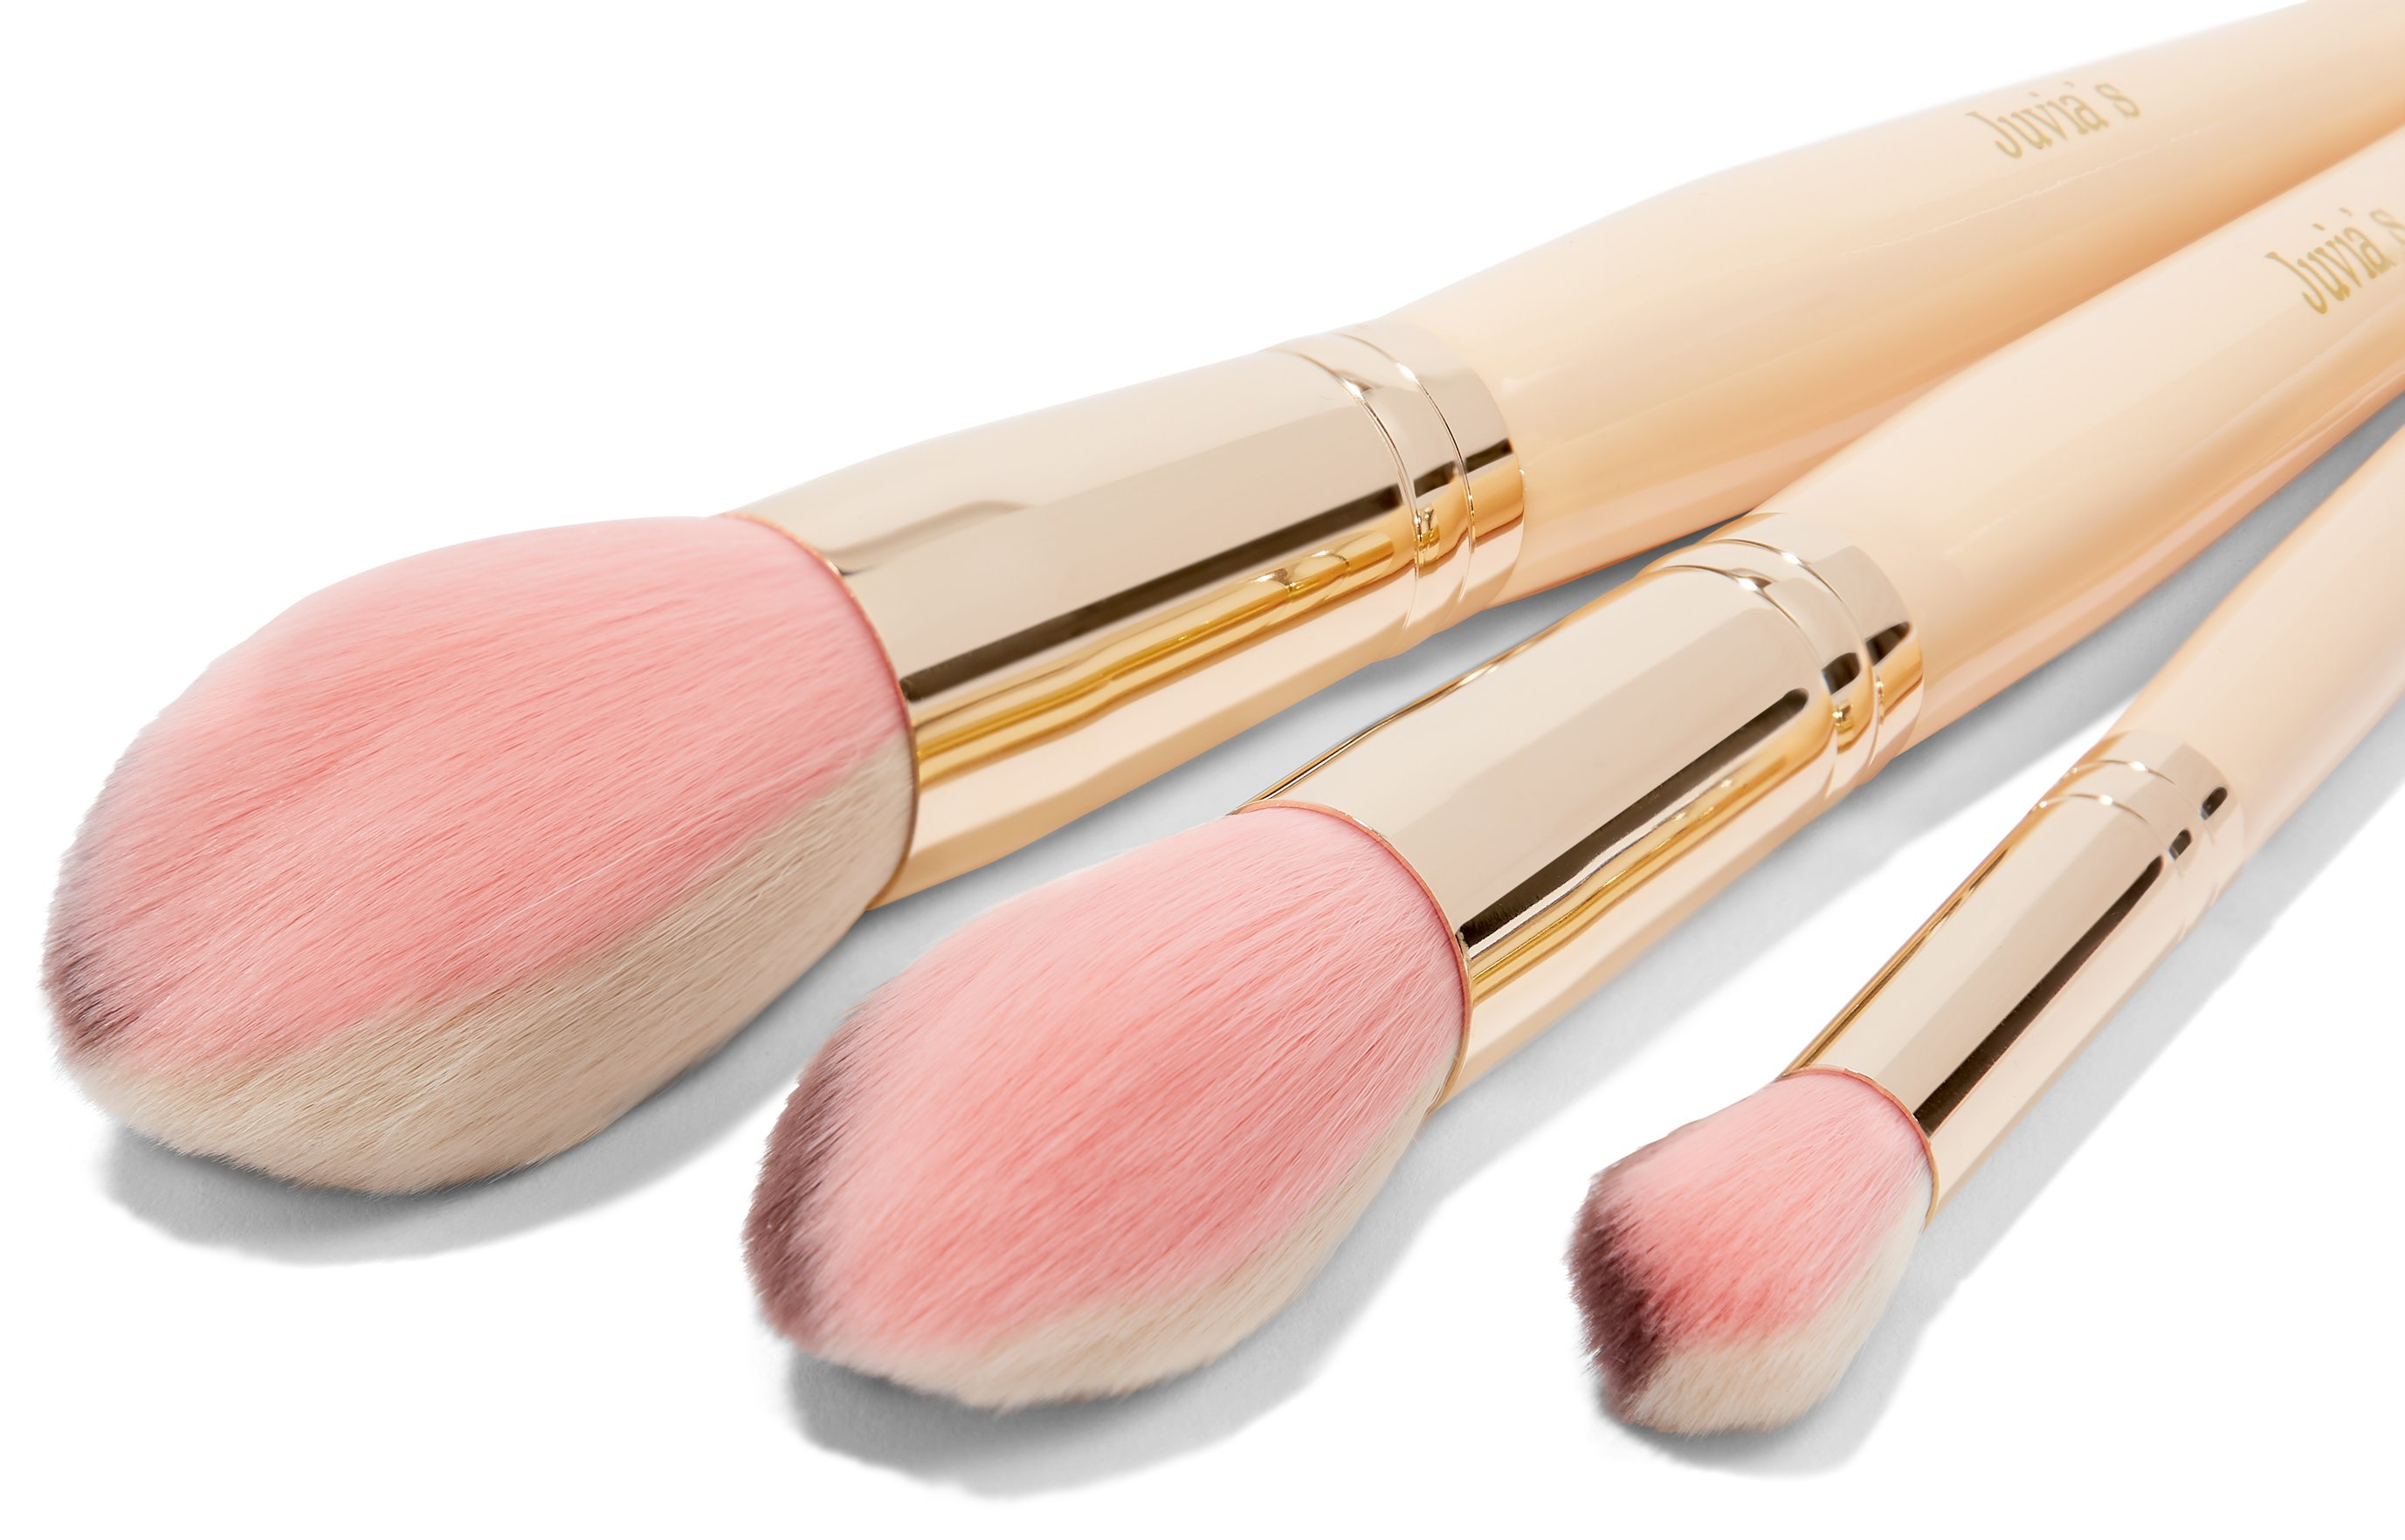 JUVIA'S 3PCS MULTICOLORED BRUSH SET